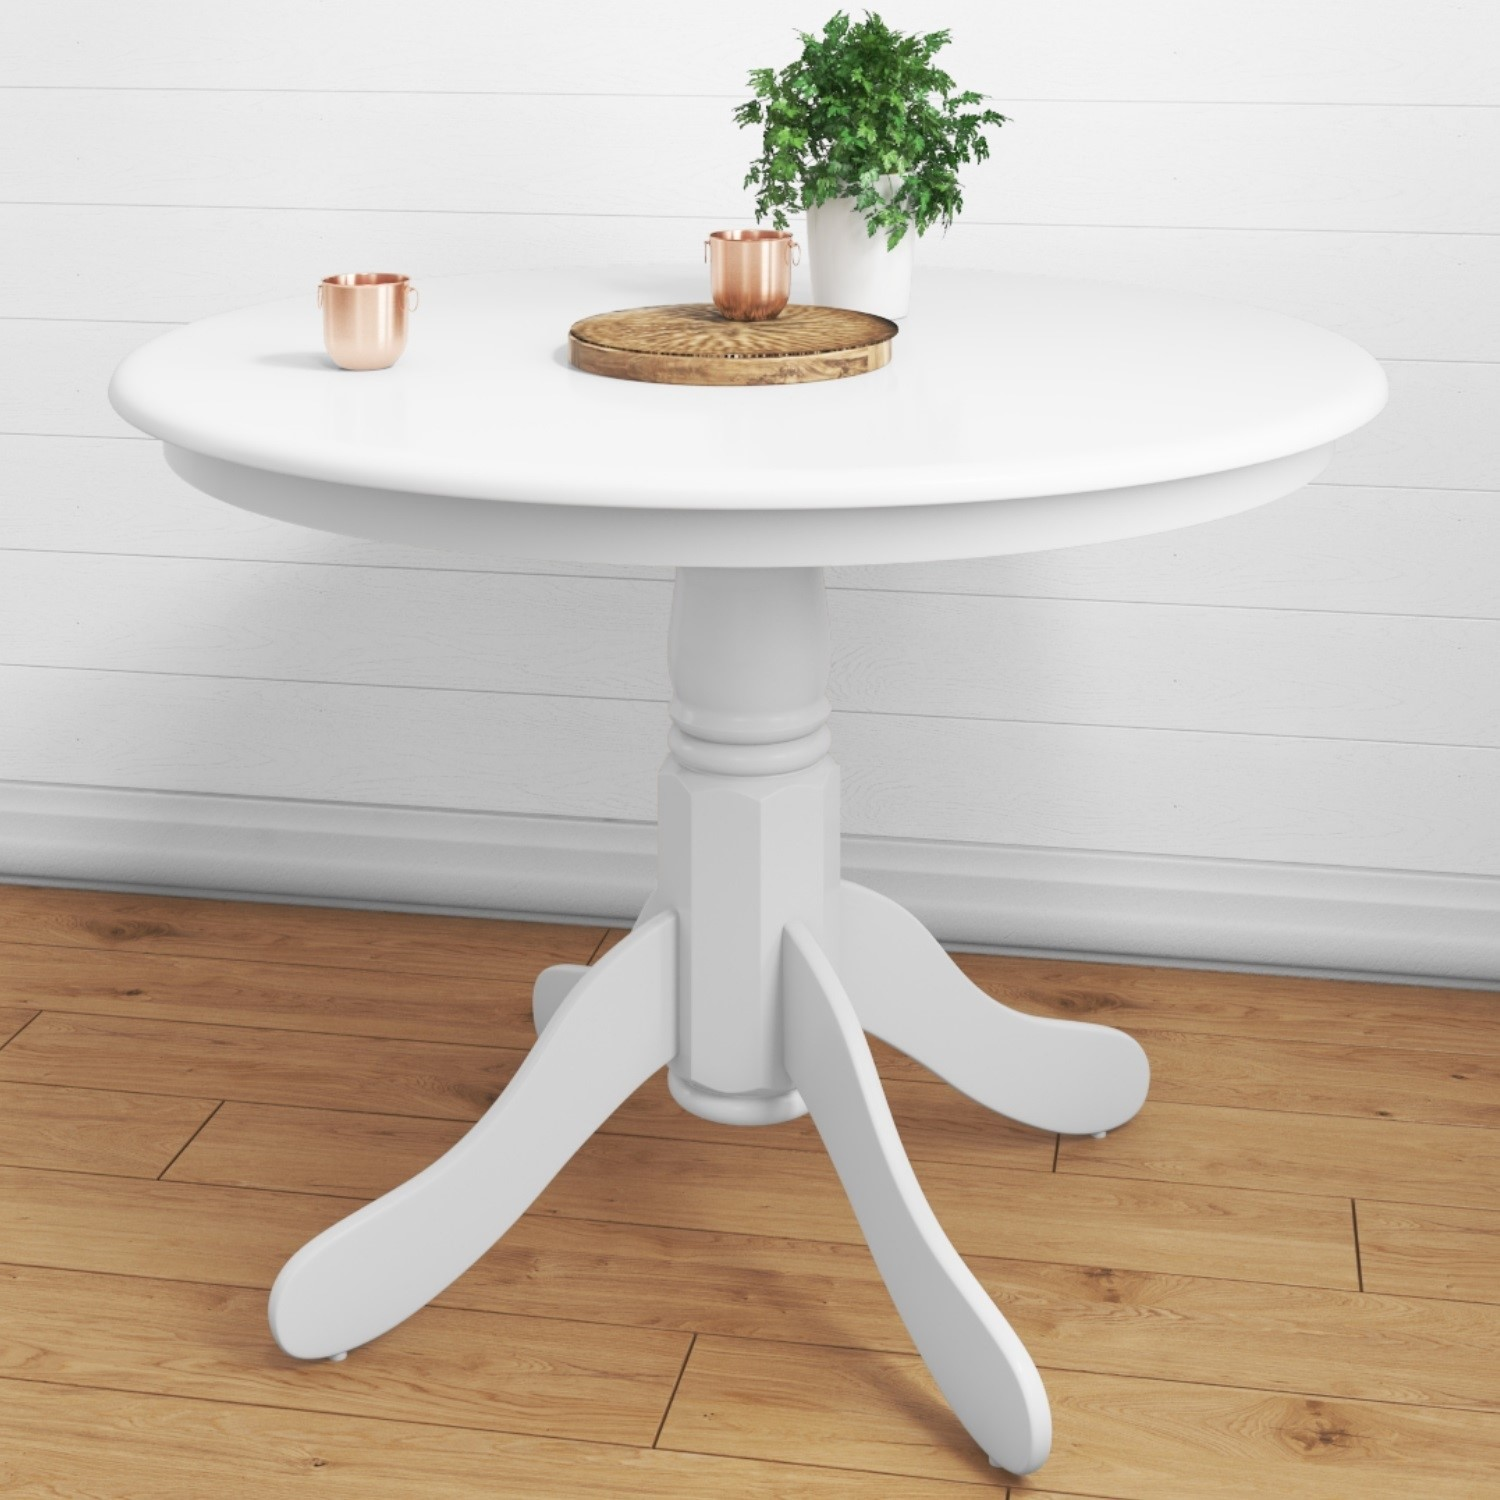 Rhode Island Small Round Dining Table In White Seats 4 Buy It